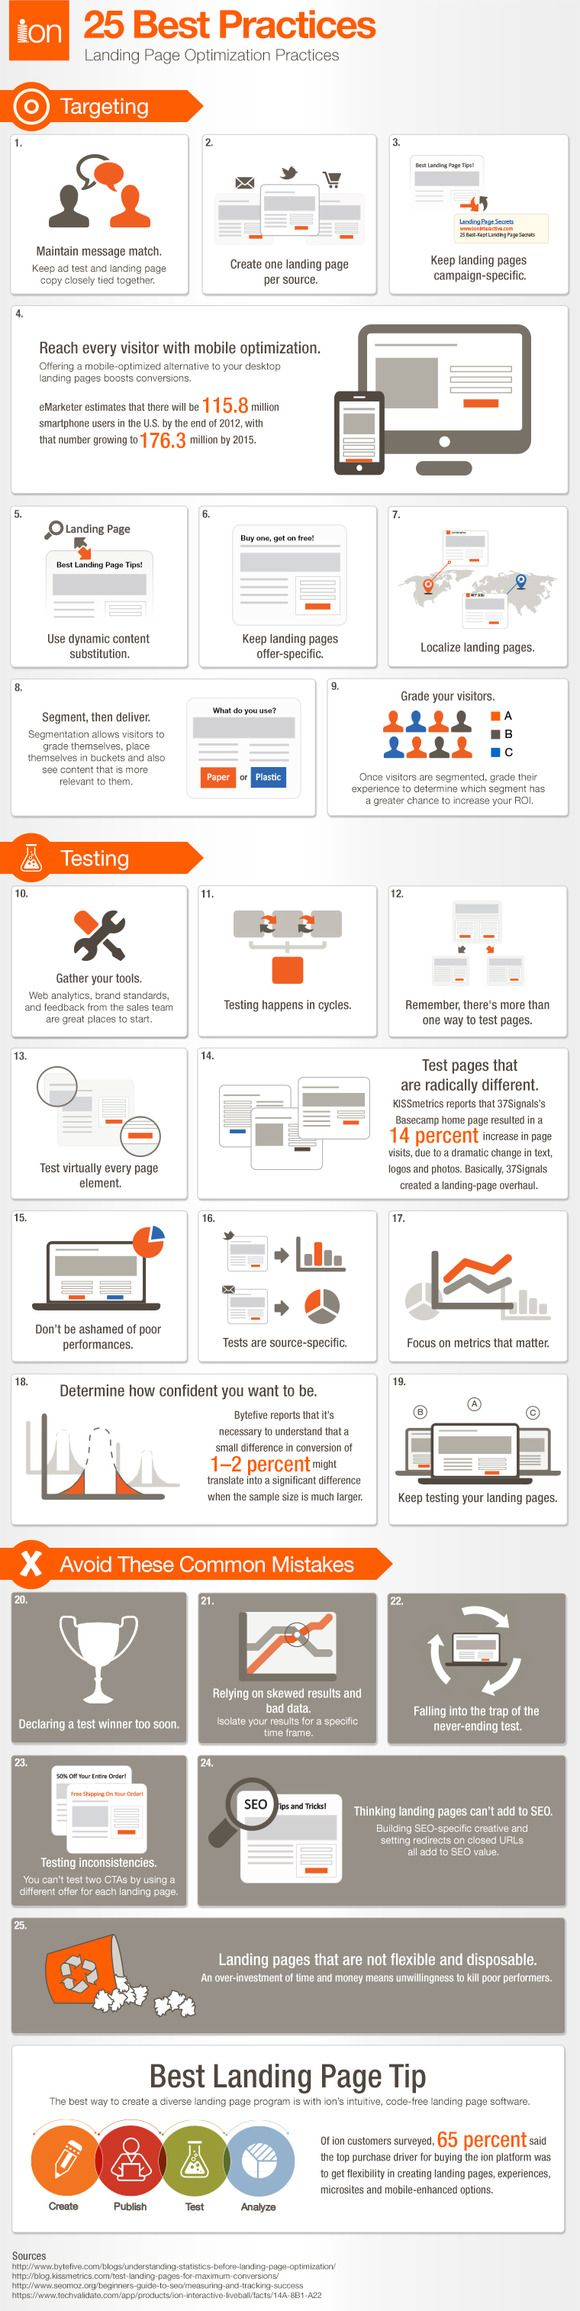 Infographic: 25 Landing Page Best Practices - ion interactive blog - ion